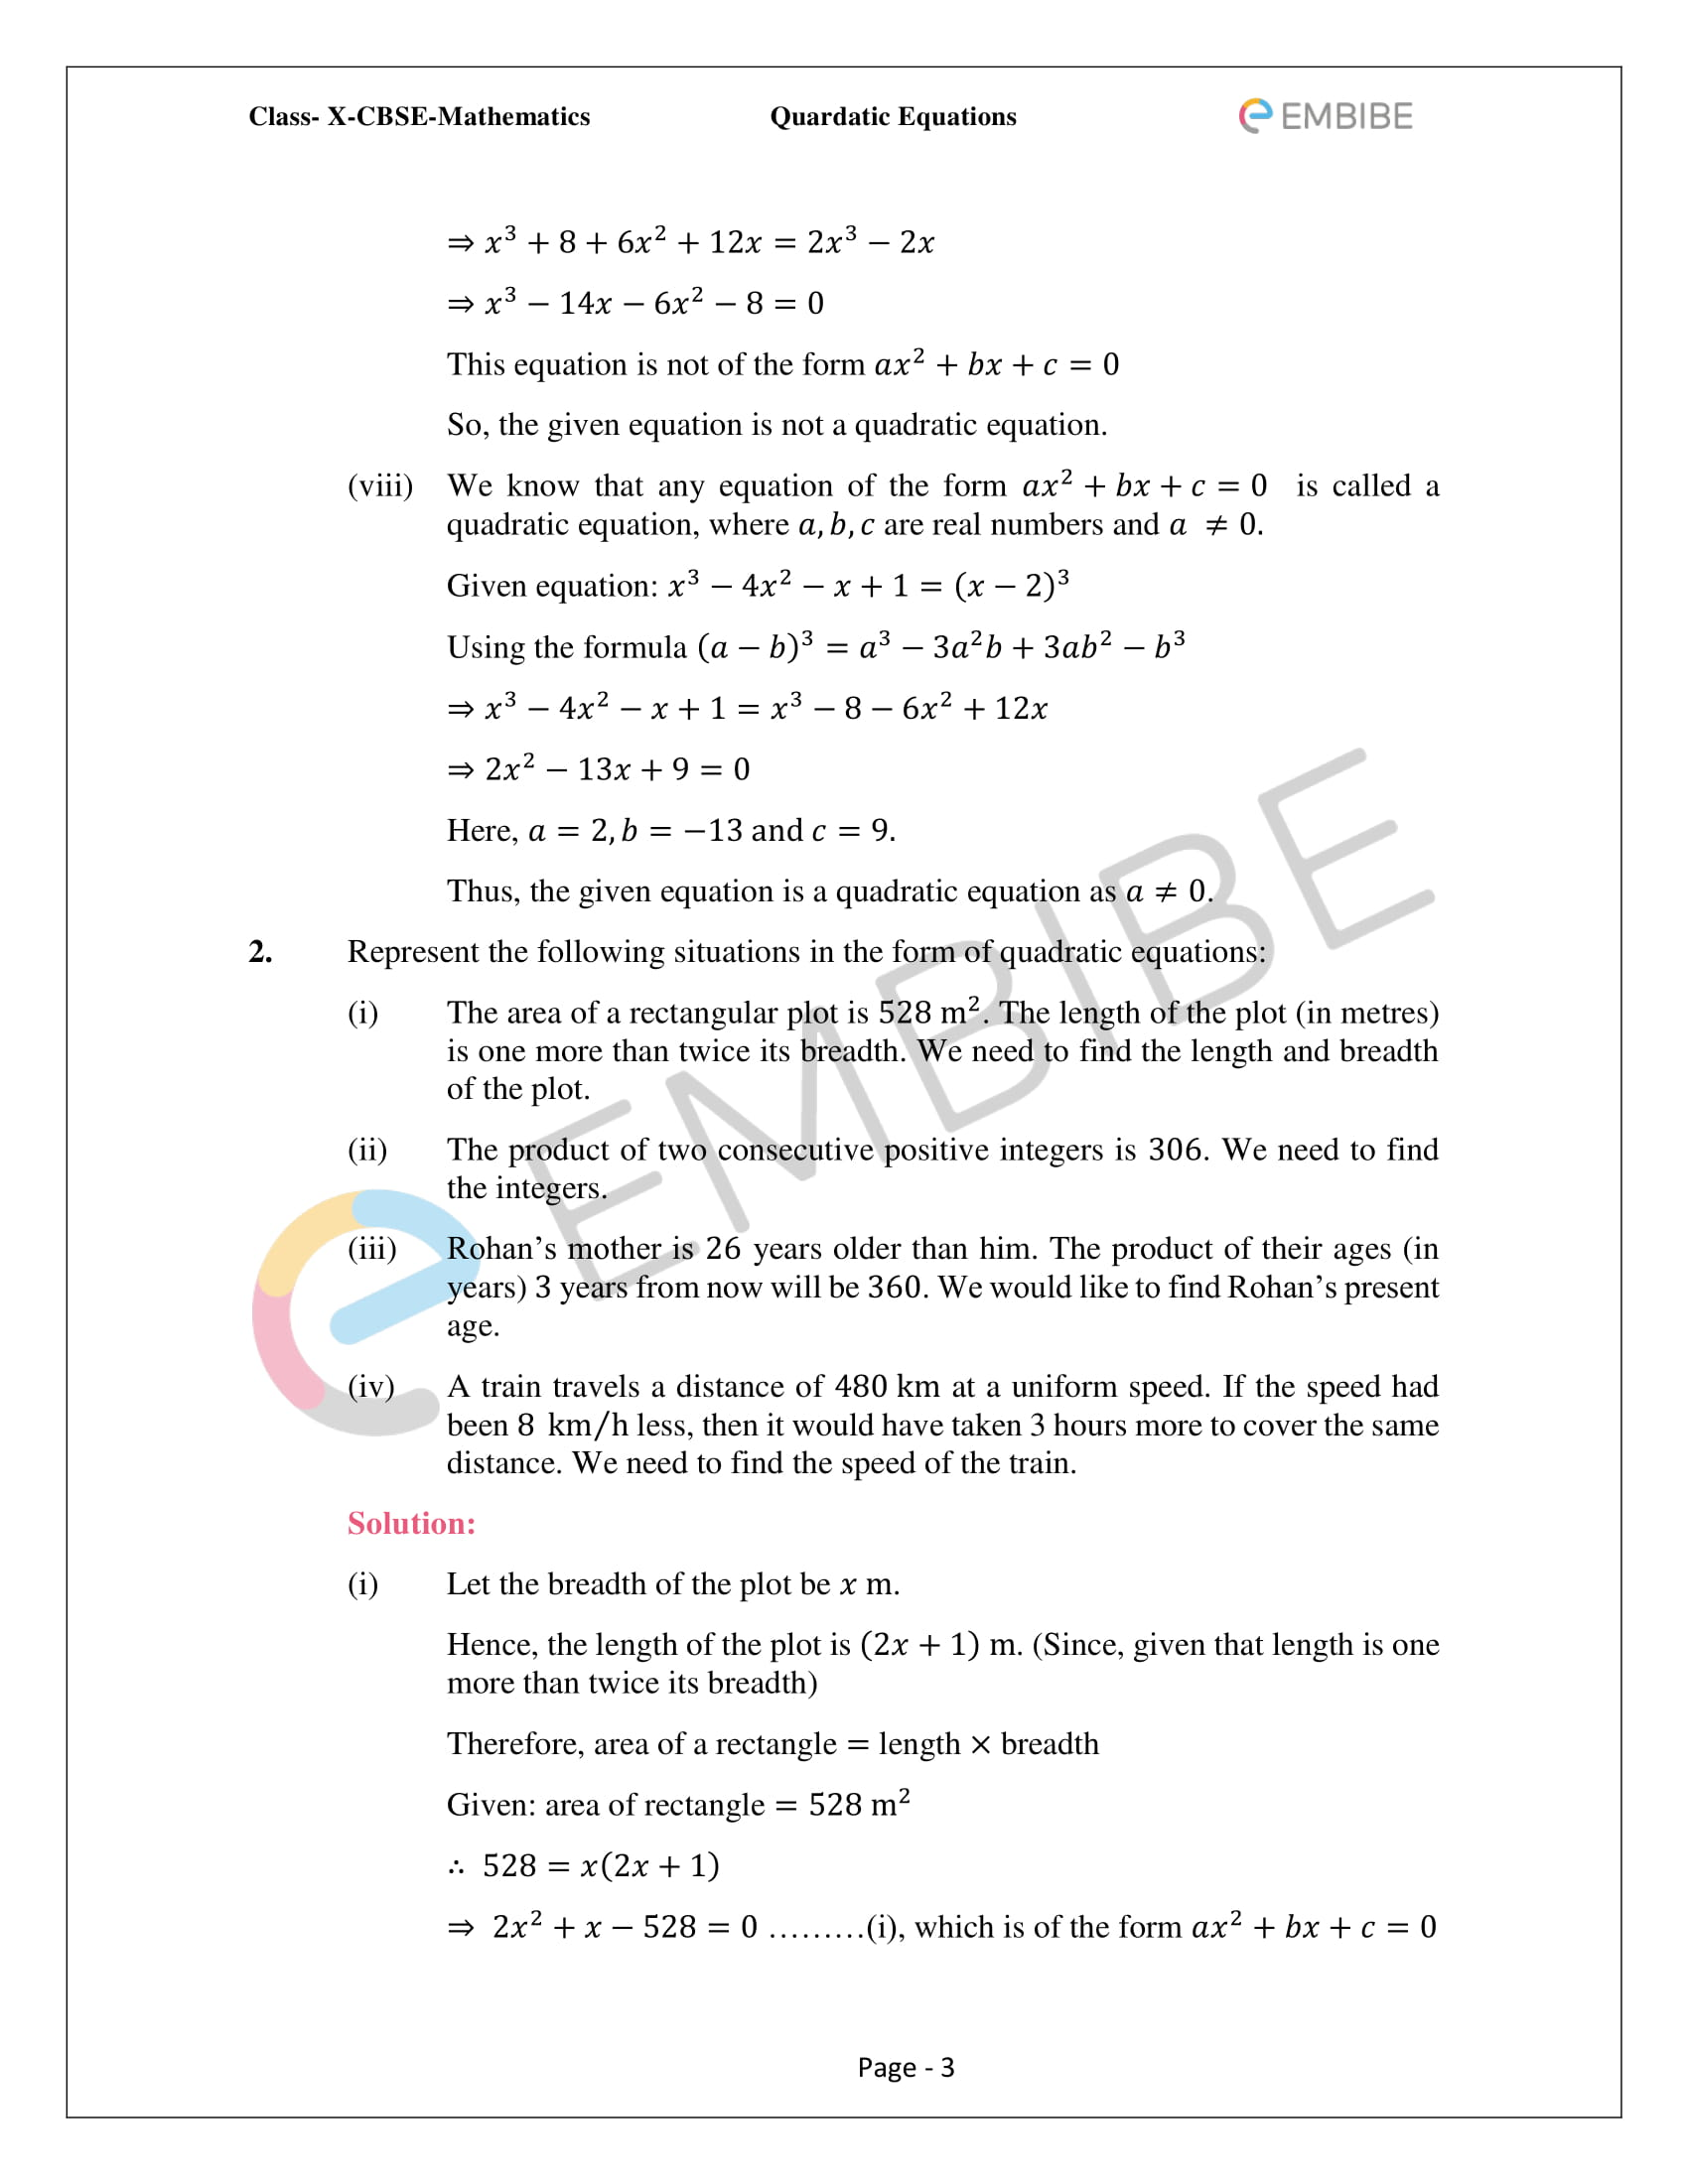 CBSE NCERT Solutions For Class 10 Maths Chapter 4 – Quadratic Equations - 3